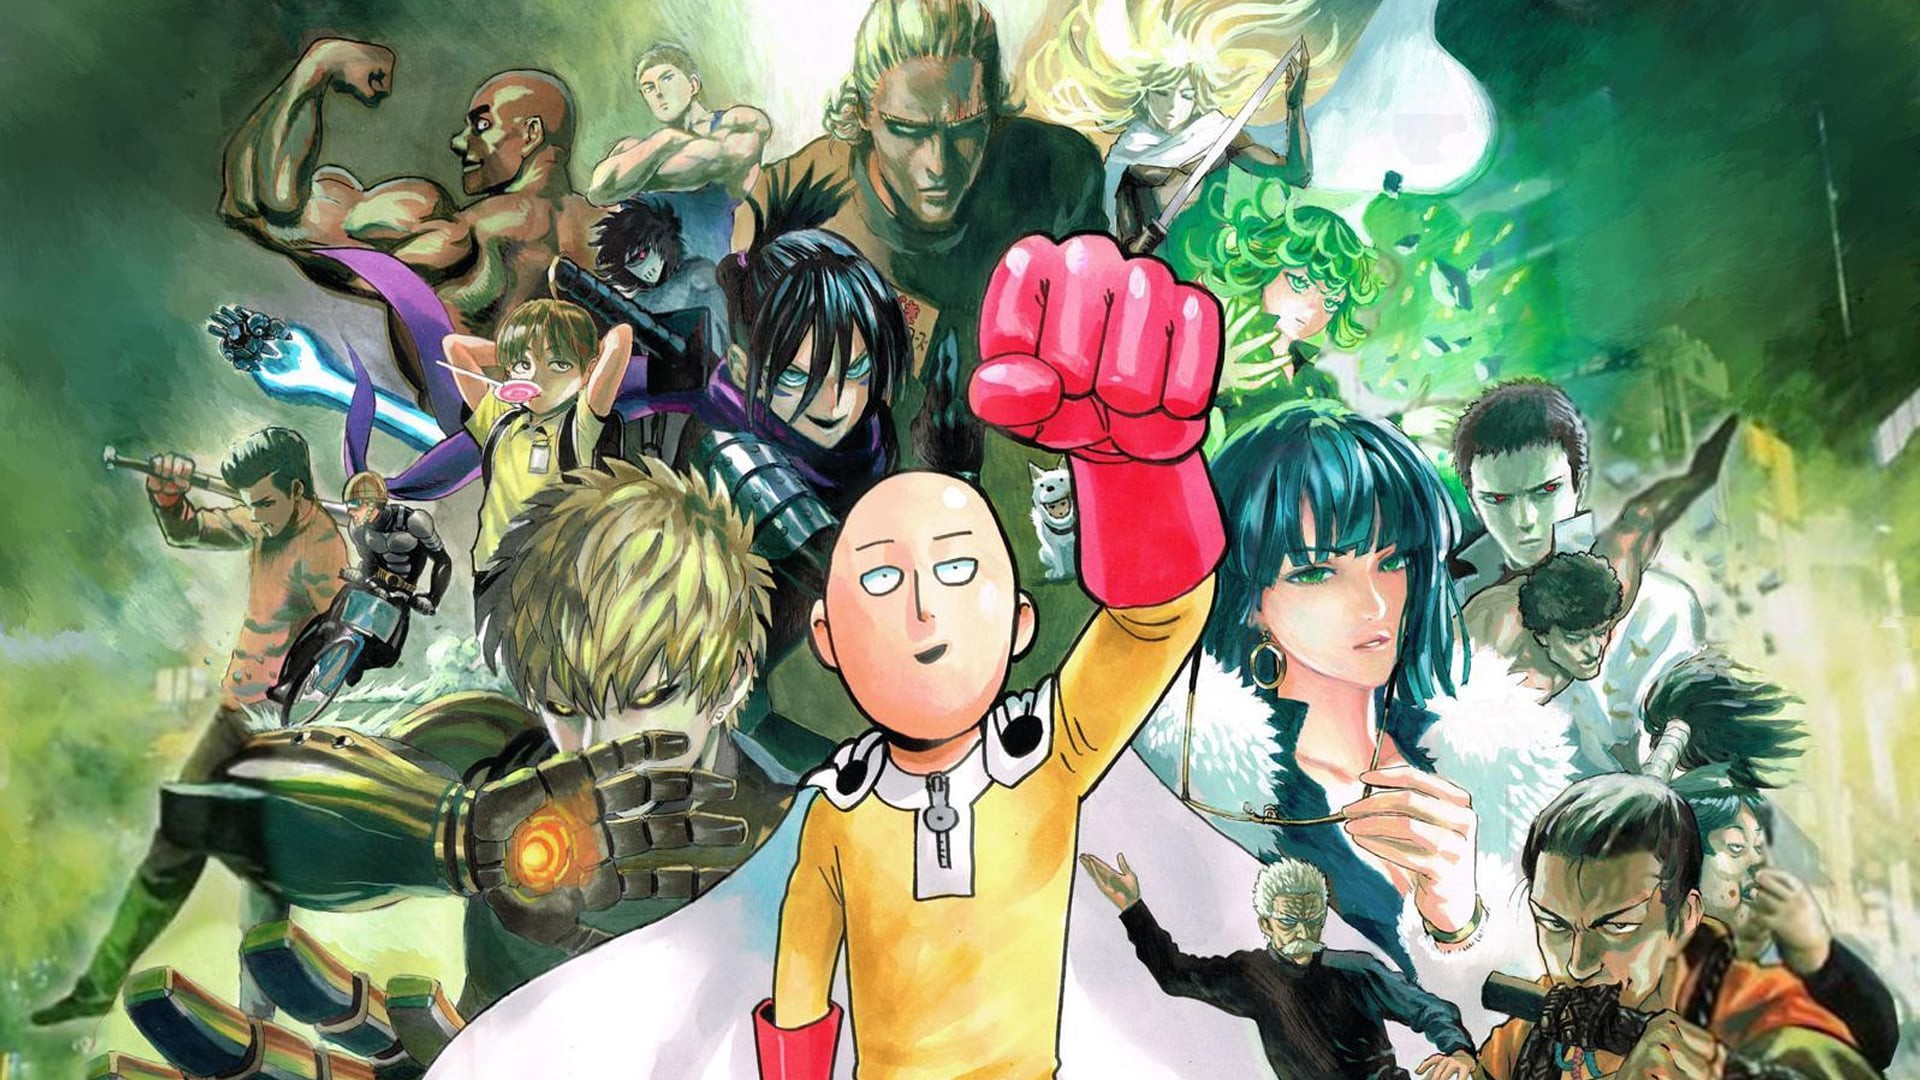 One Punch Man season 2 episode 7 online streaming release date